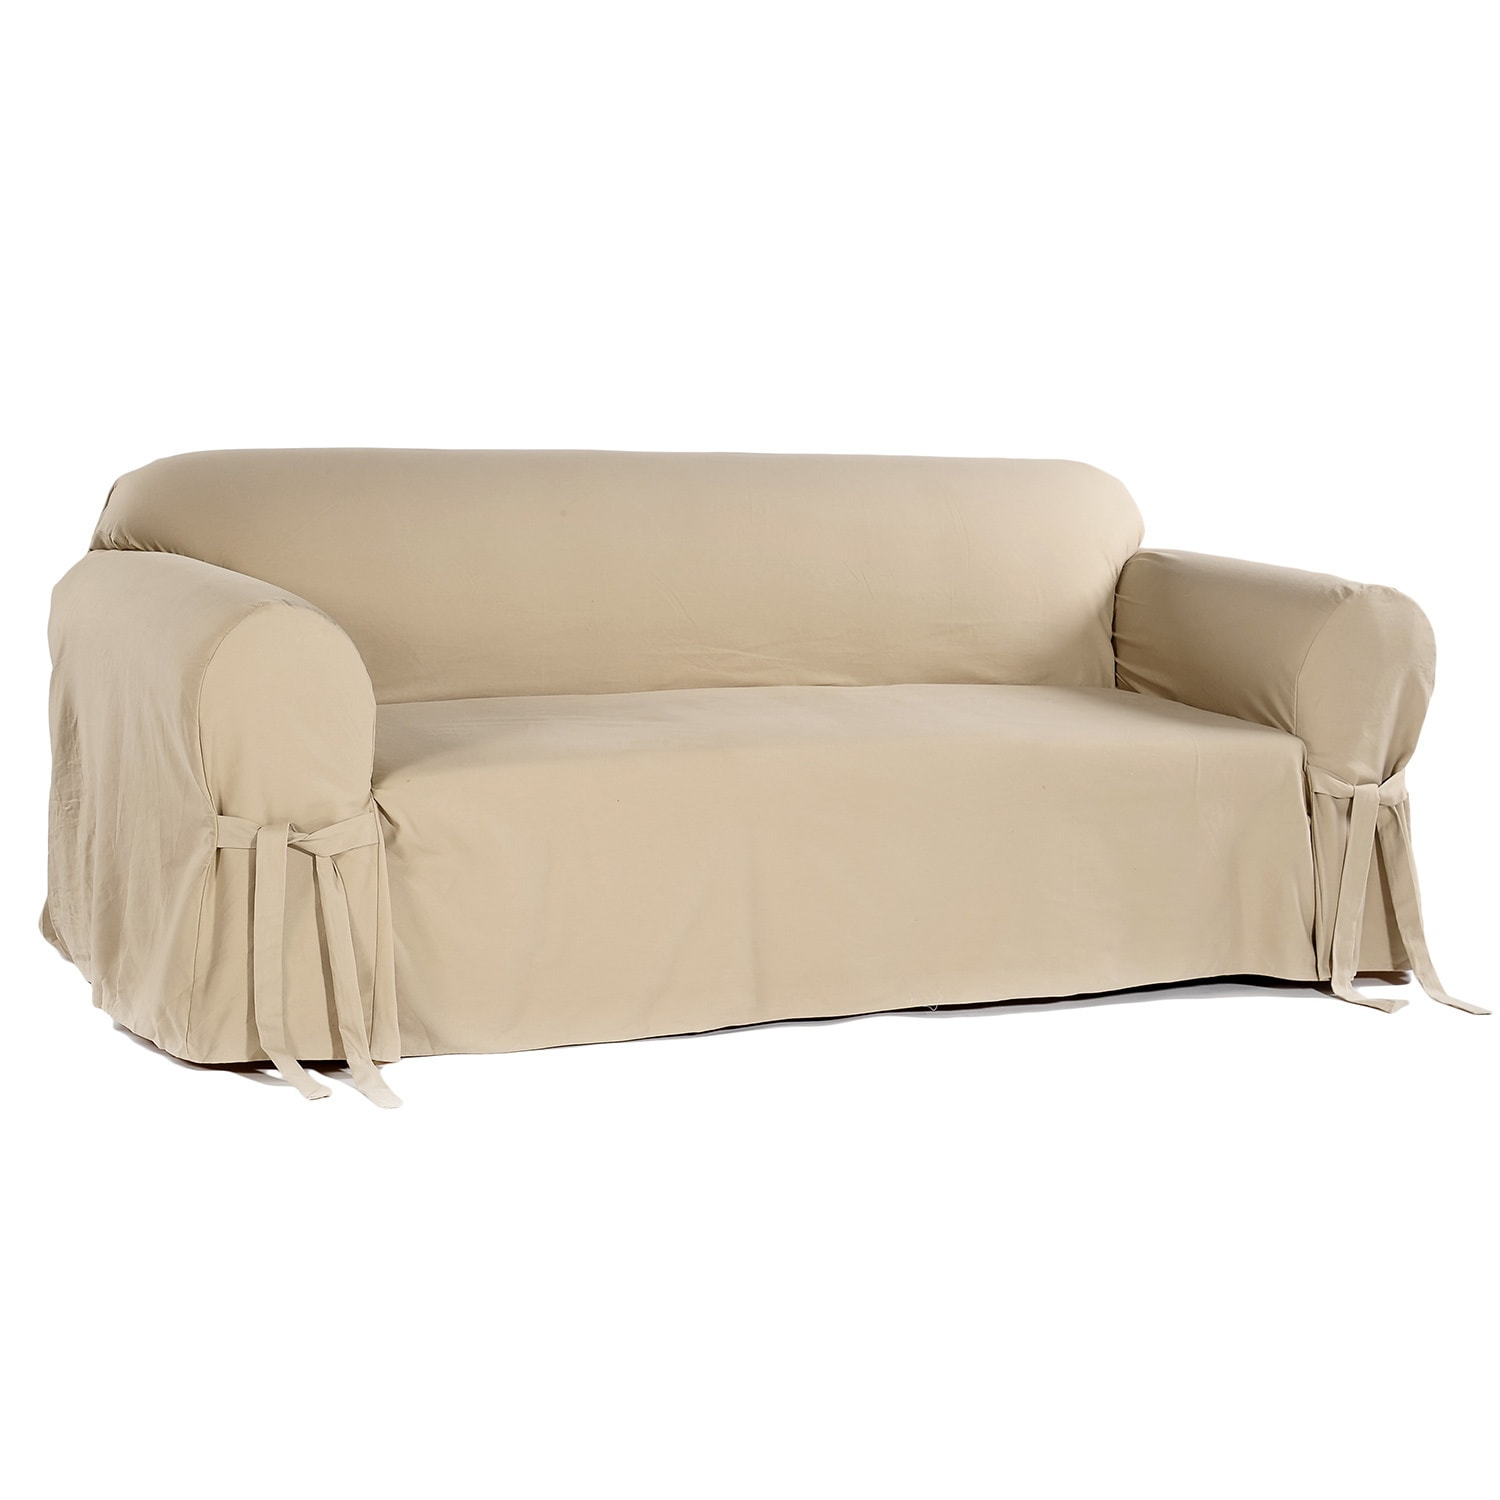 Clic Slipcovers Brushed Twill Sofa Slipcover On Free Shipping Today 458162